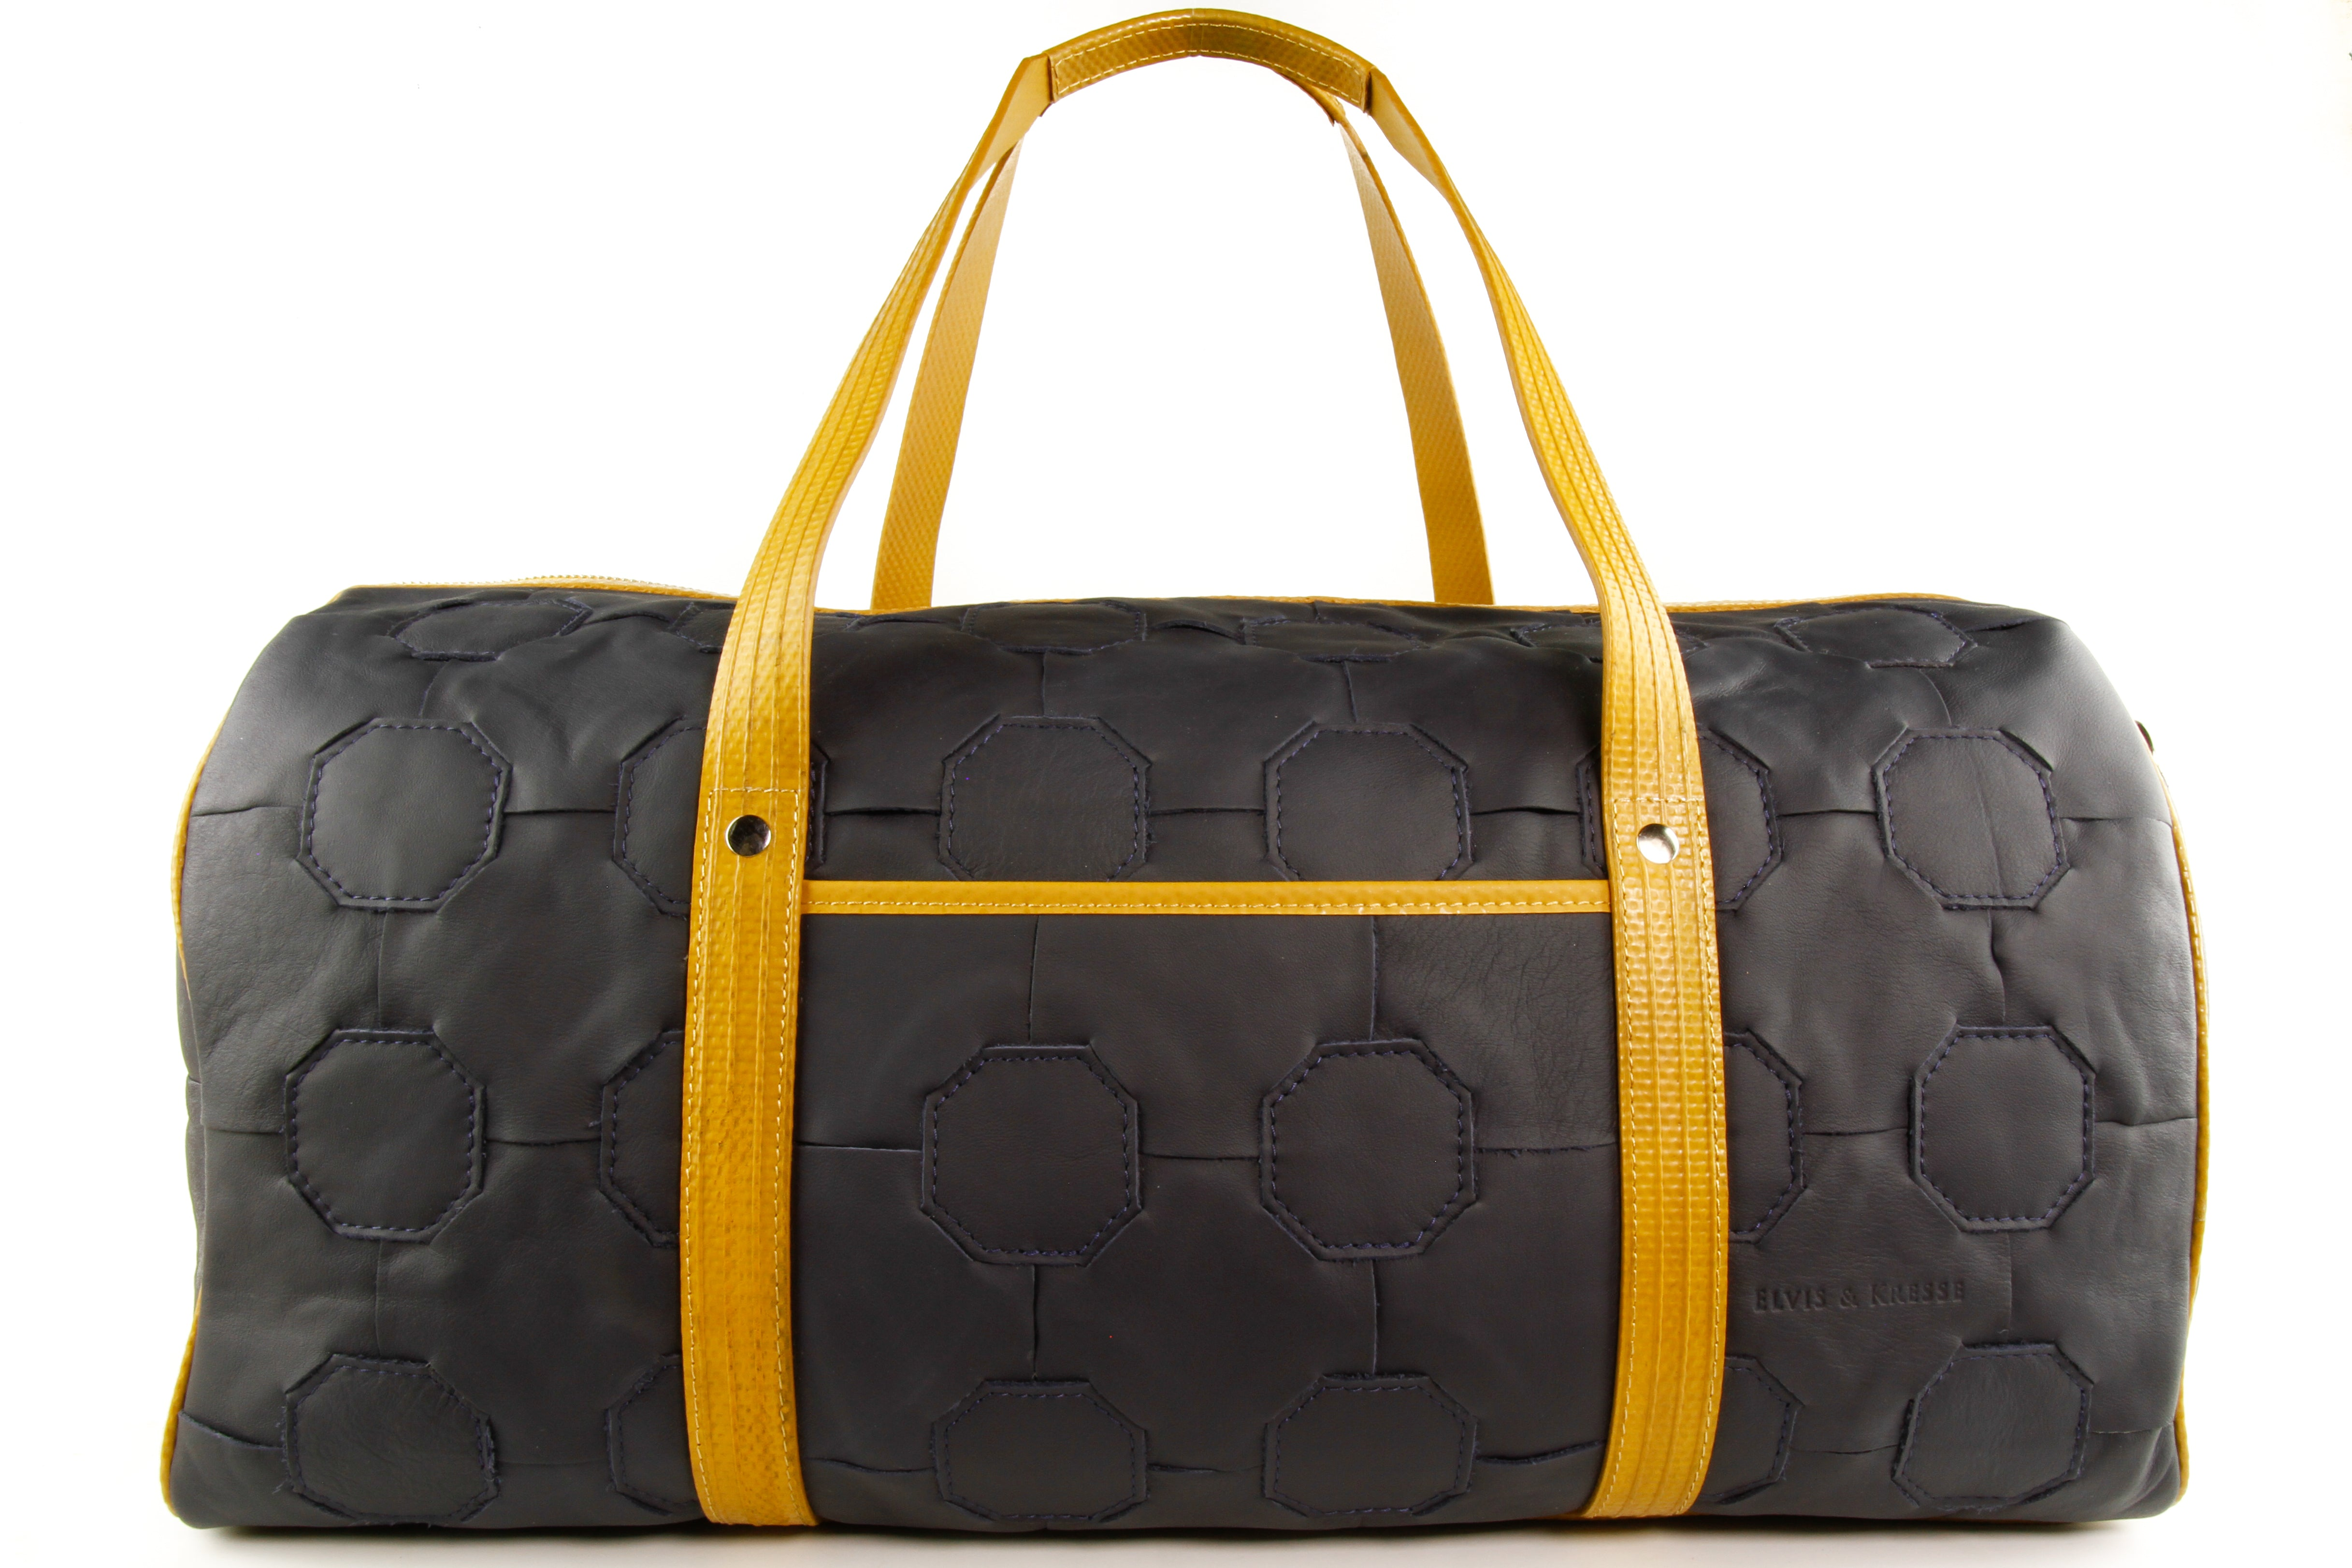 250c082a3e1 Elvis & Kresse | Fire & Hide Duffel Bag - TWYG